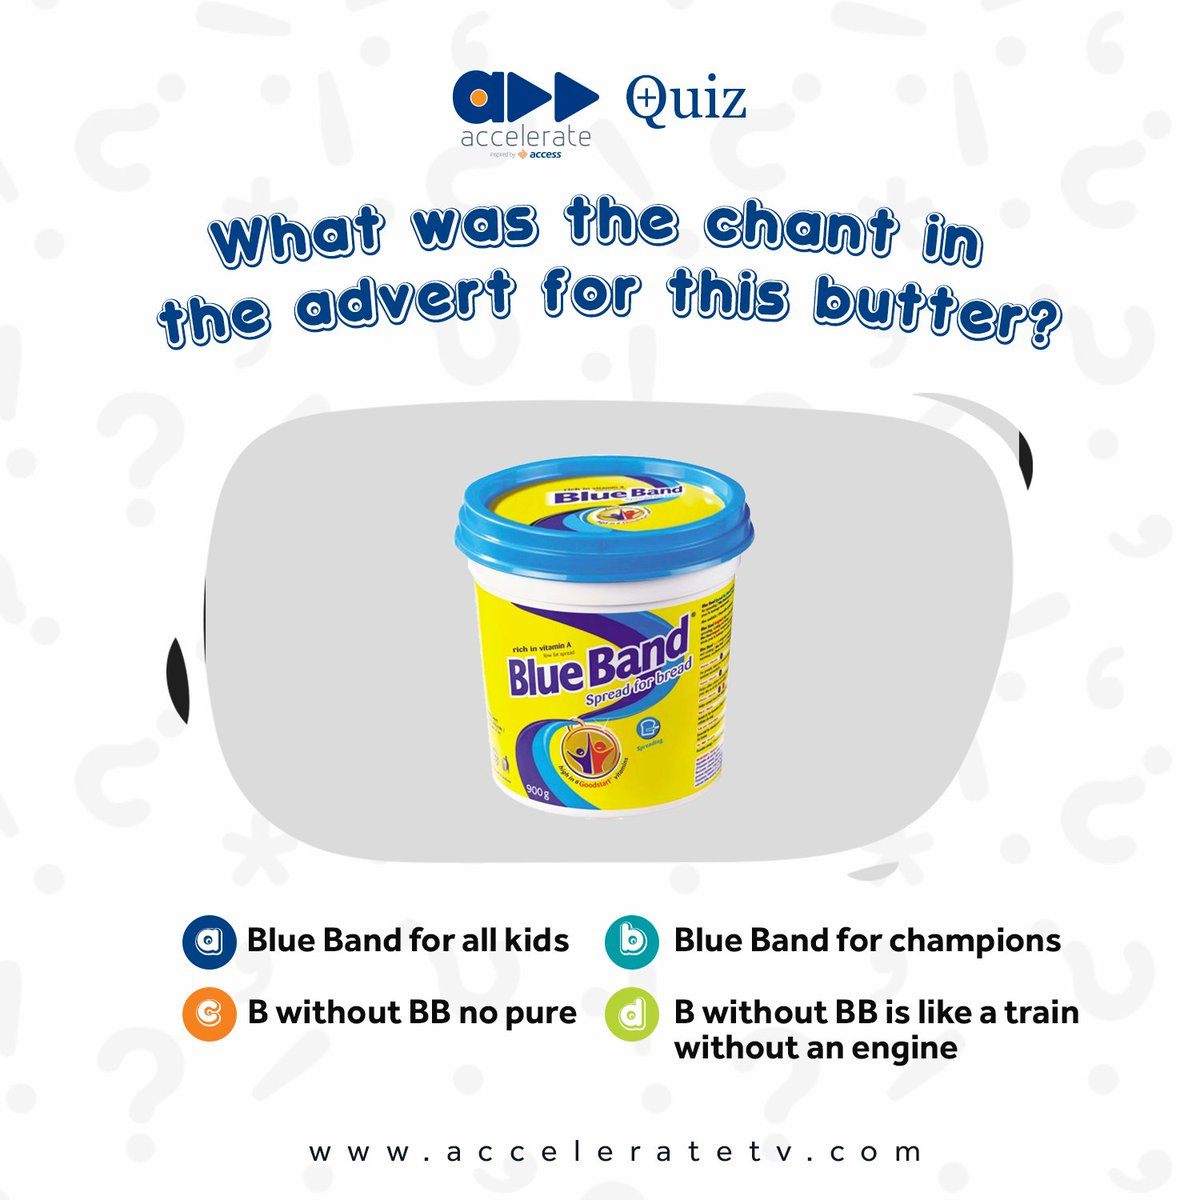 What was the chant in the advert for this butter? Tag your friends to see if they can remember. #acceleratequiz